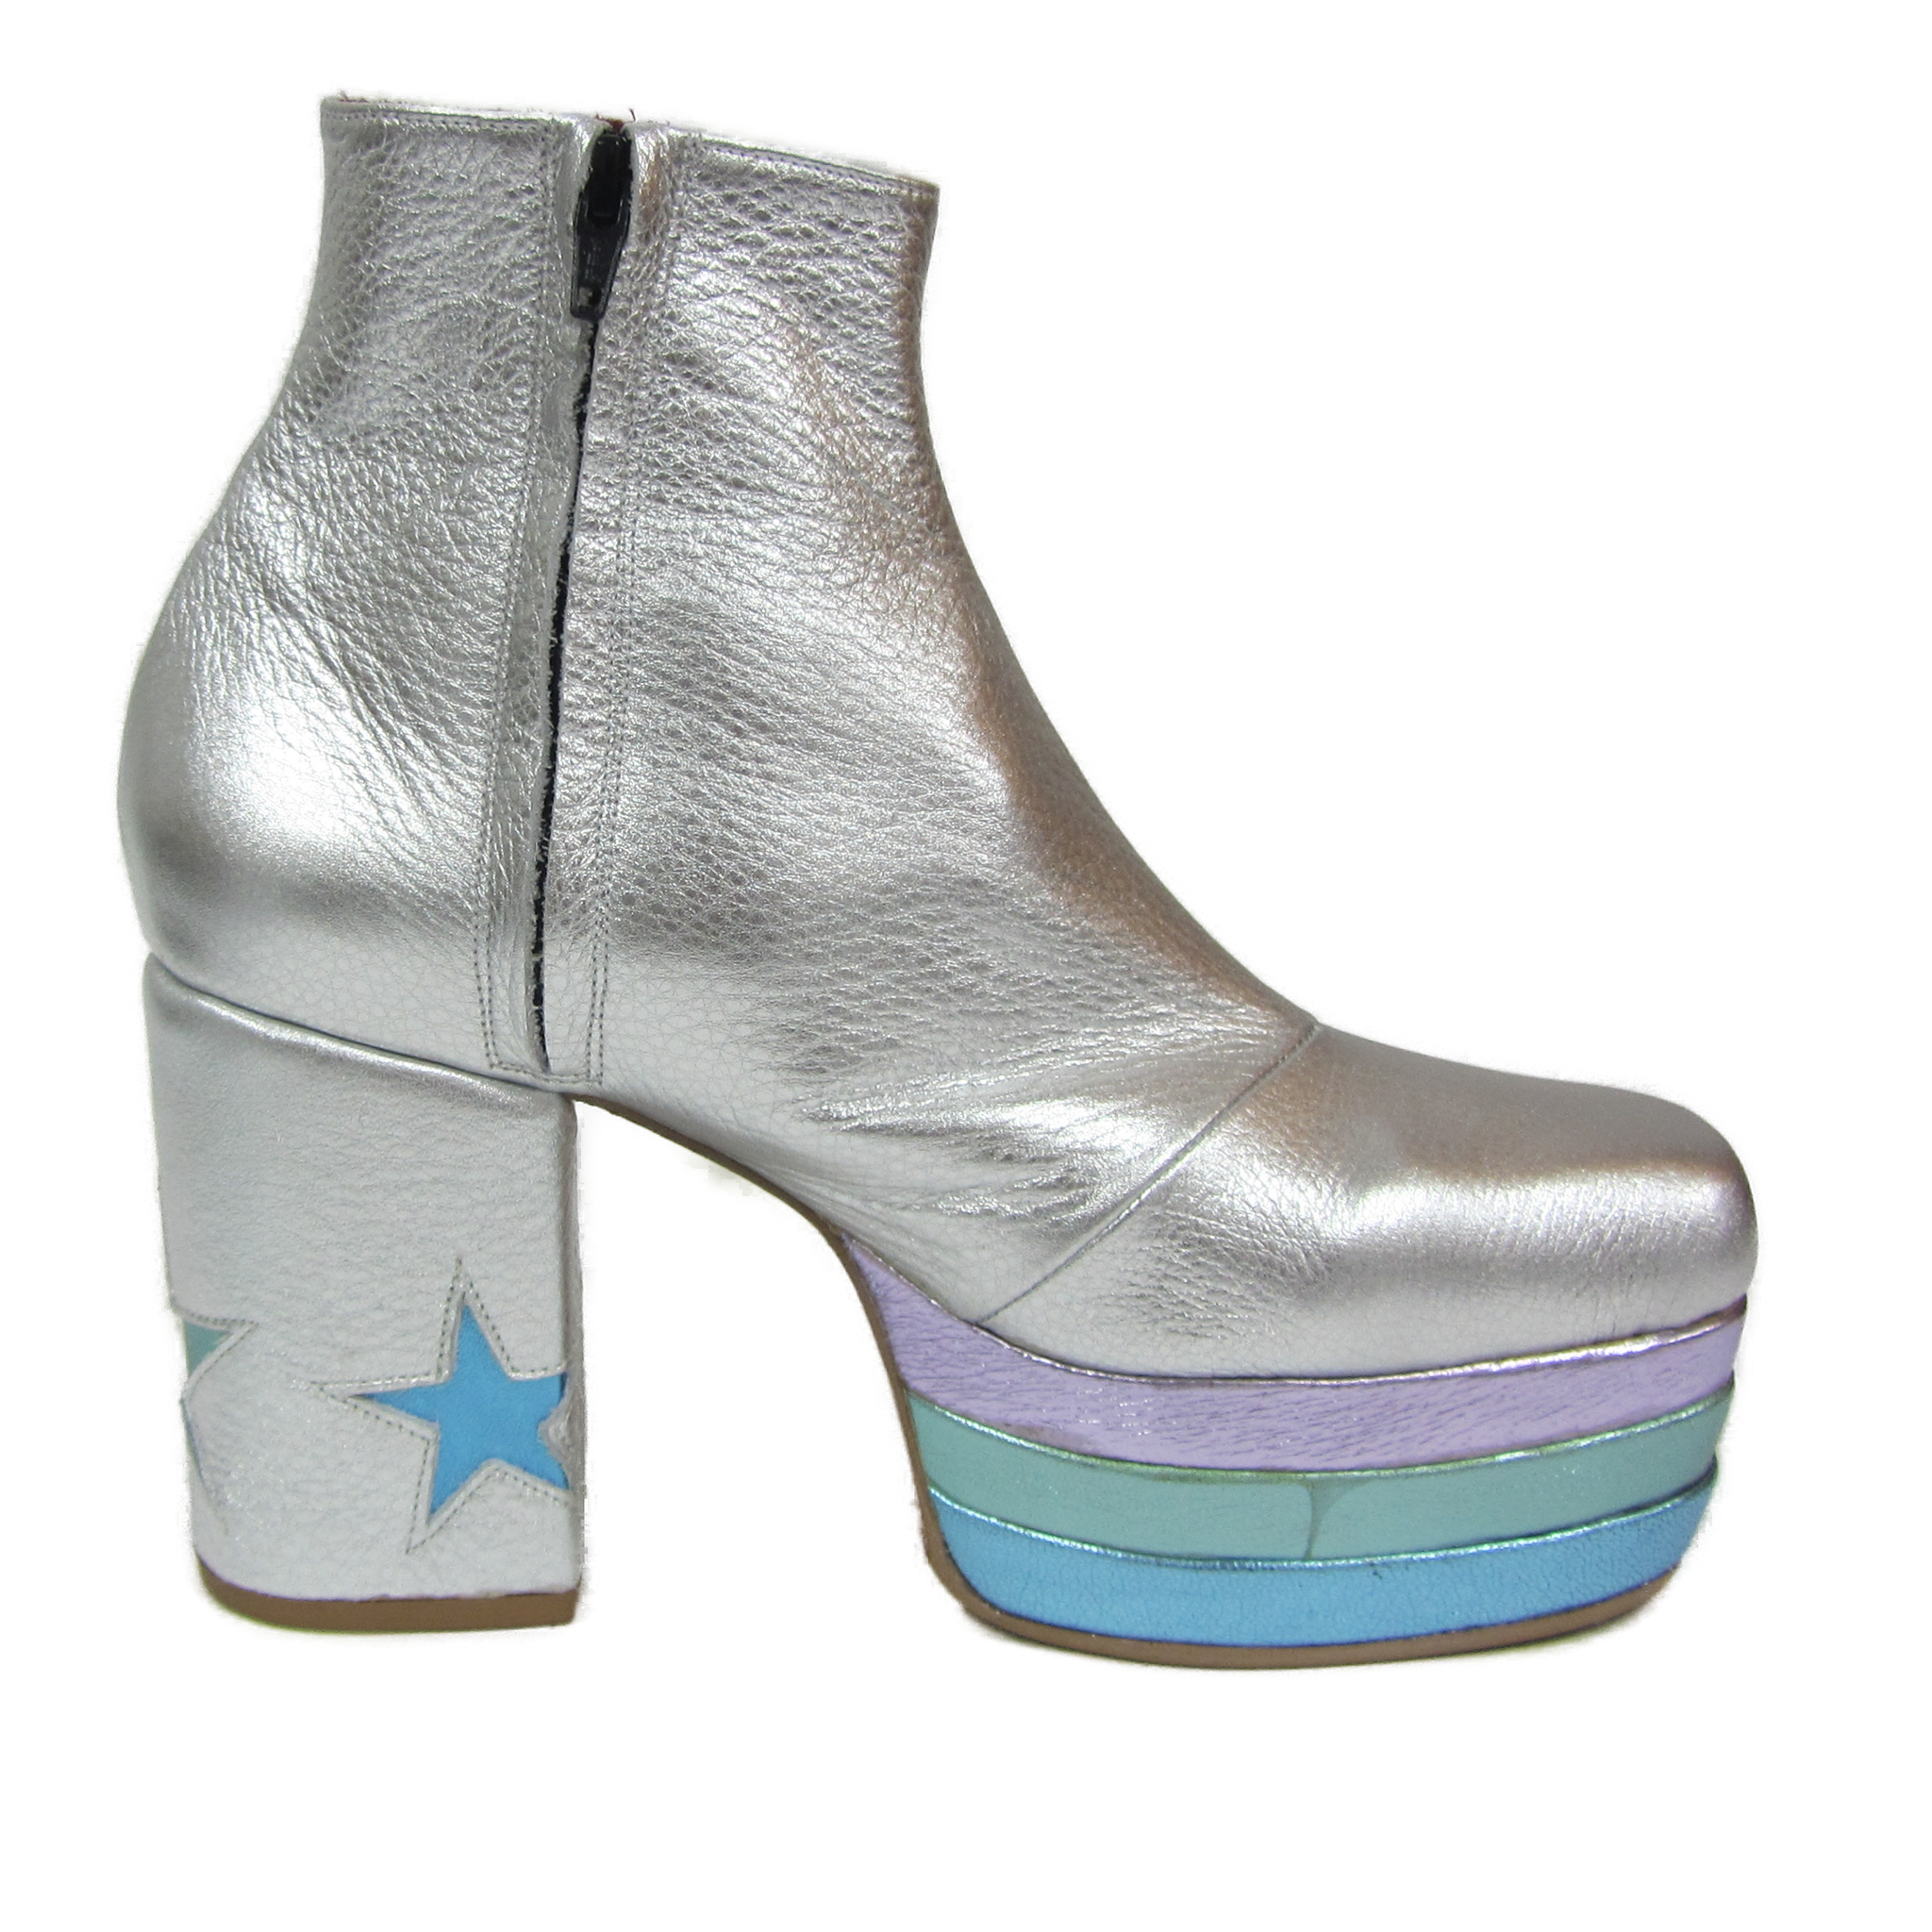 Glam Boots - Angel platform